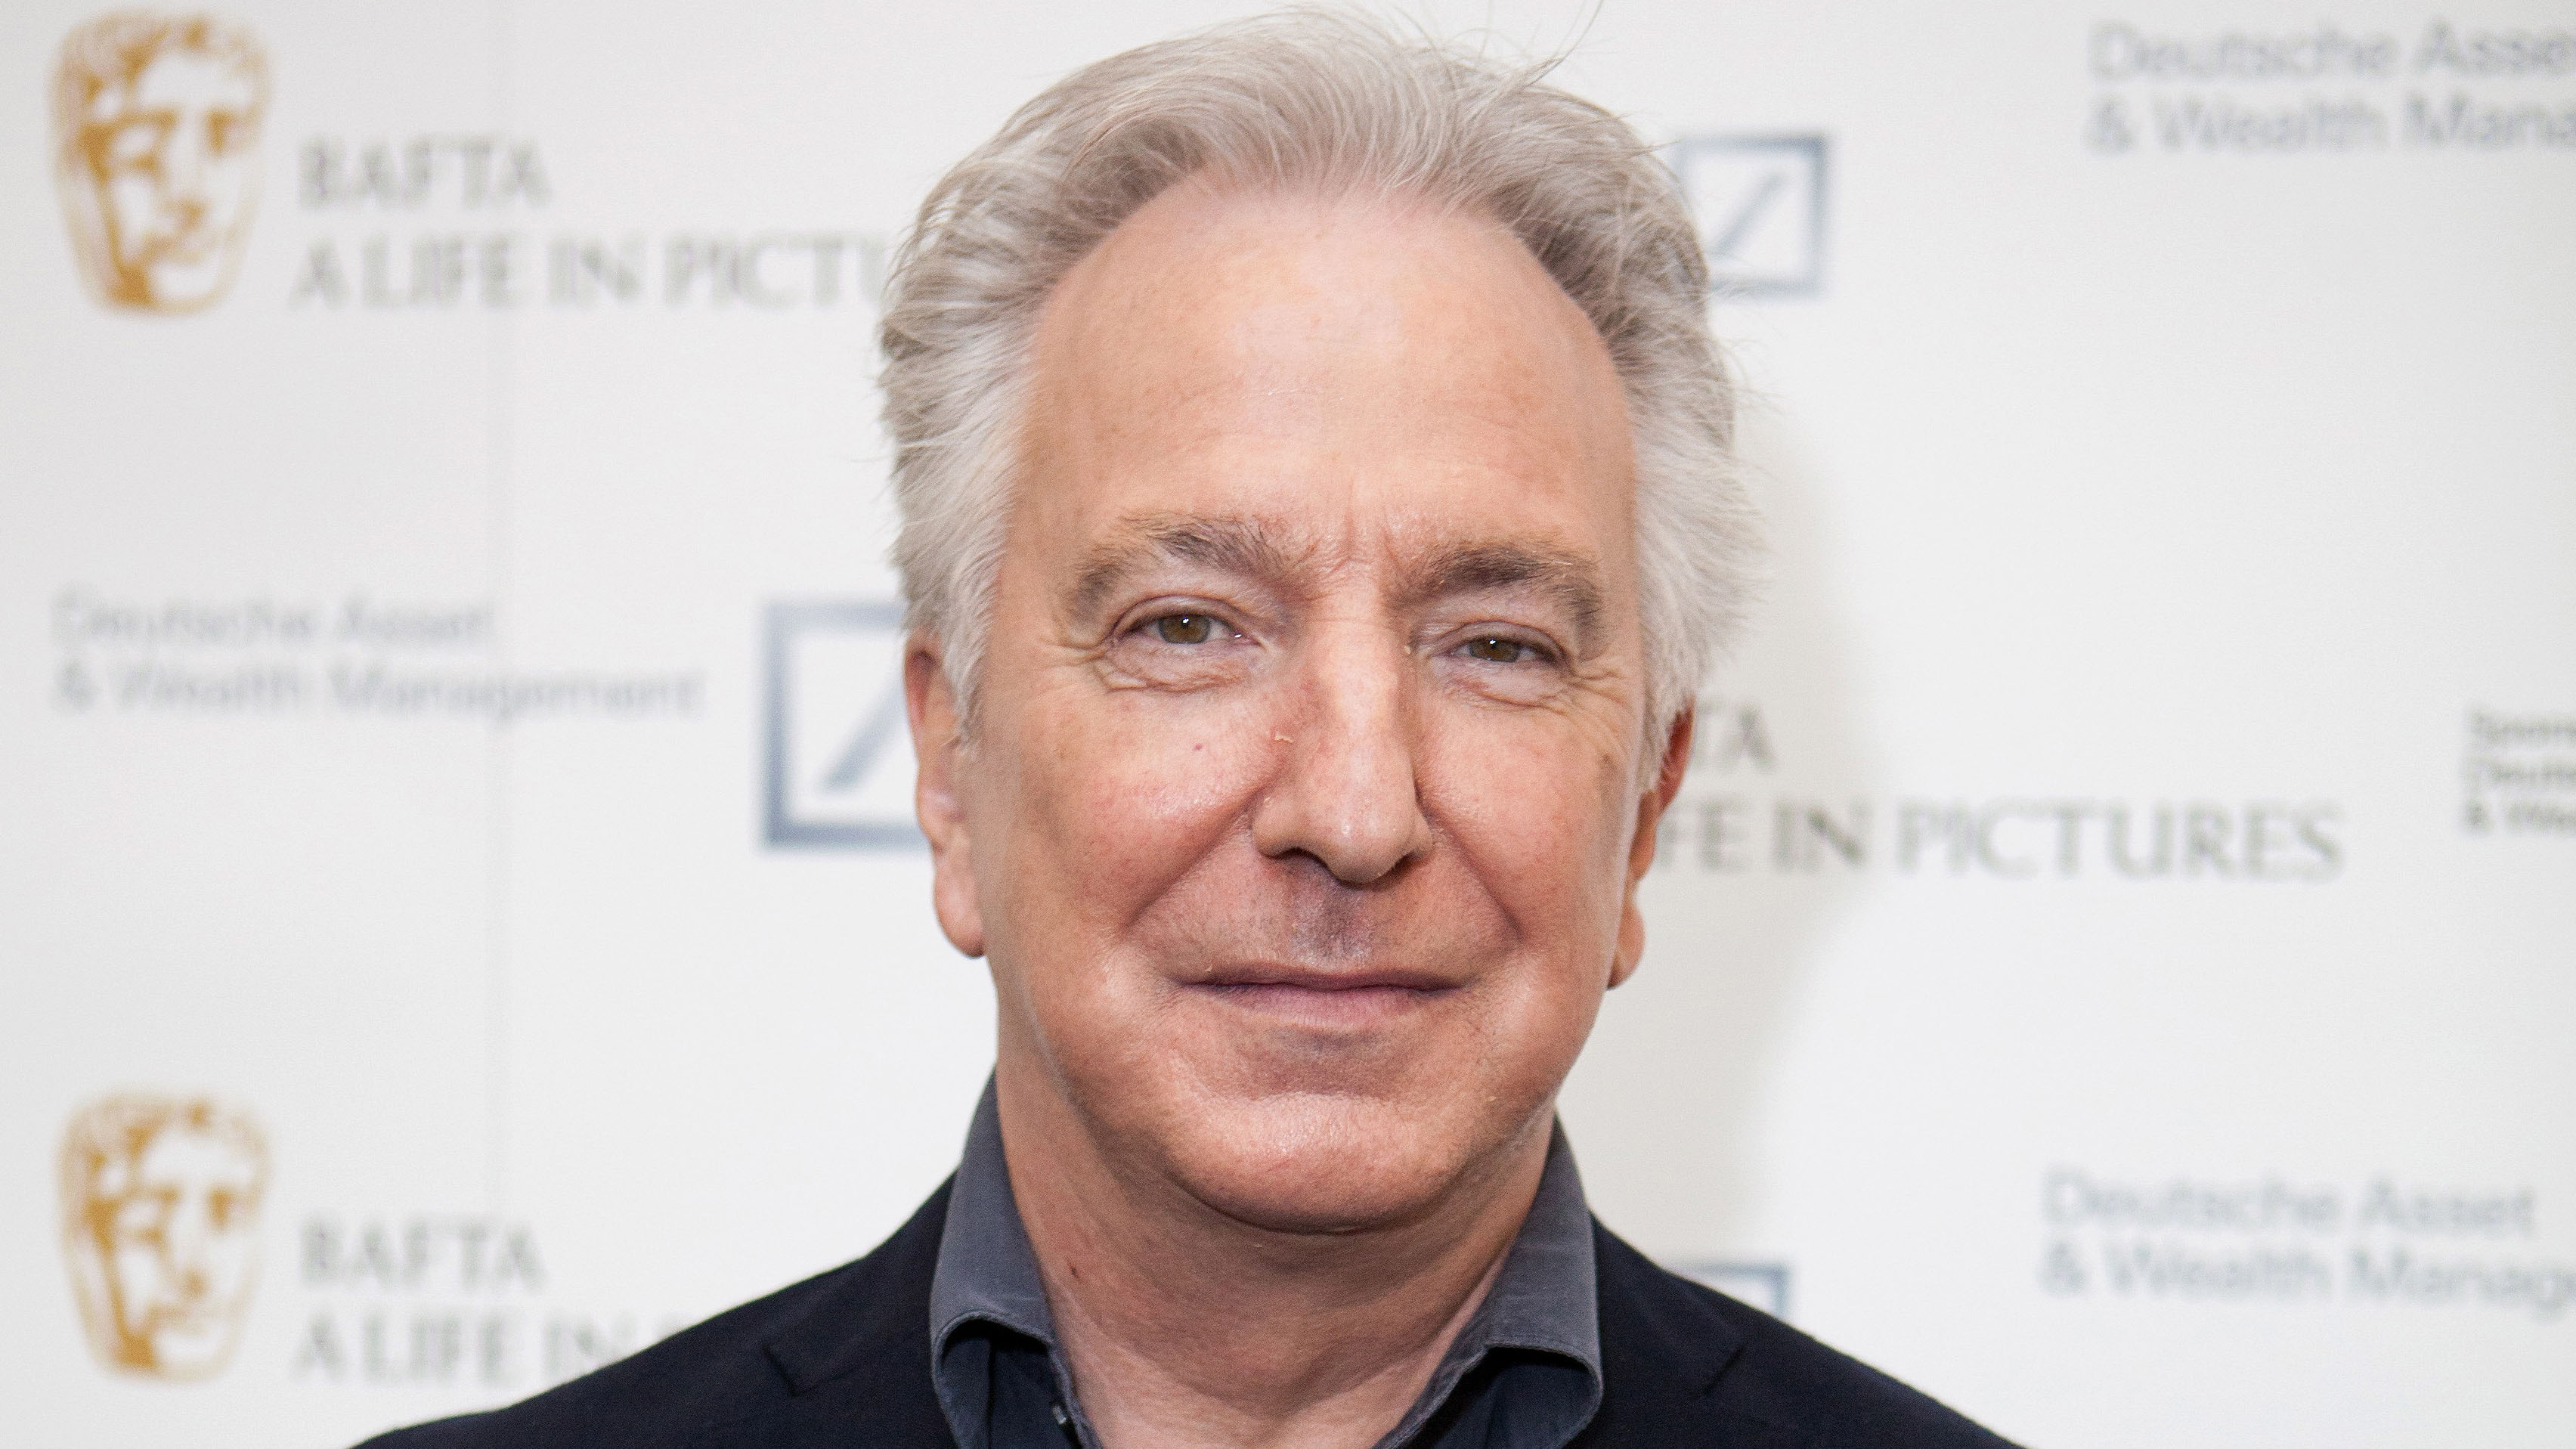 <p>Veteran British actor Alan Rickman, known for his memorable portrayal of screen villains, has died at the age of 69 after suffering from cancer.</p><p>Rickman, who won a Golden Globe and a BAFTA during his career as a film, television and theatre actor, had a rich, smooth voice and brooding delivery that helped make him a sex symbol.</p><p>Rickman started out in theatre and shot to international fame in 1988 playing the German terrorist mastermind Hans Gruber, Bruce Willis's adversary, in Die Hard. (AAP)</p>